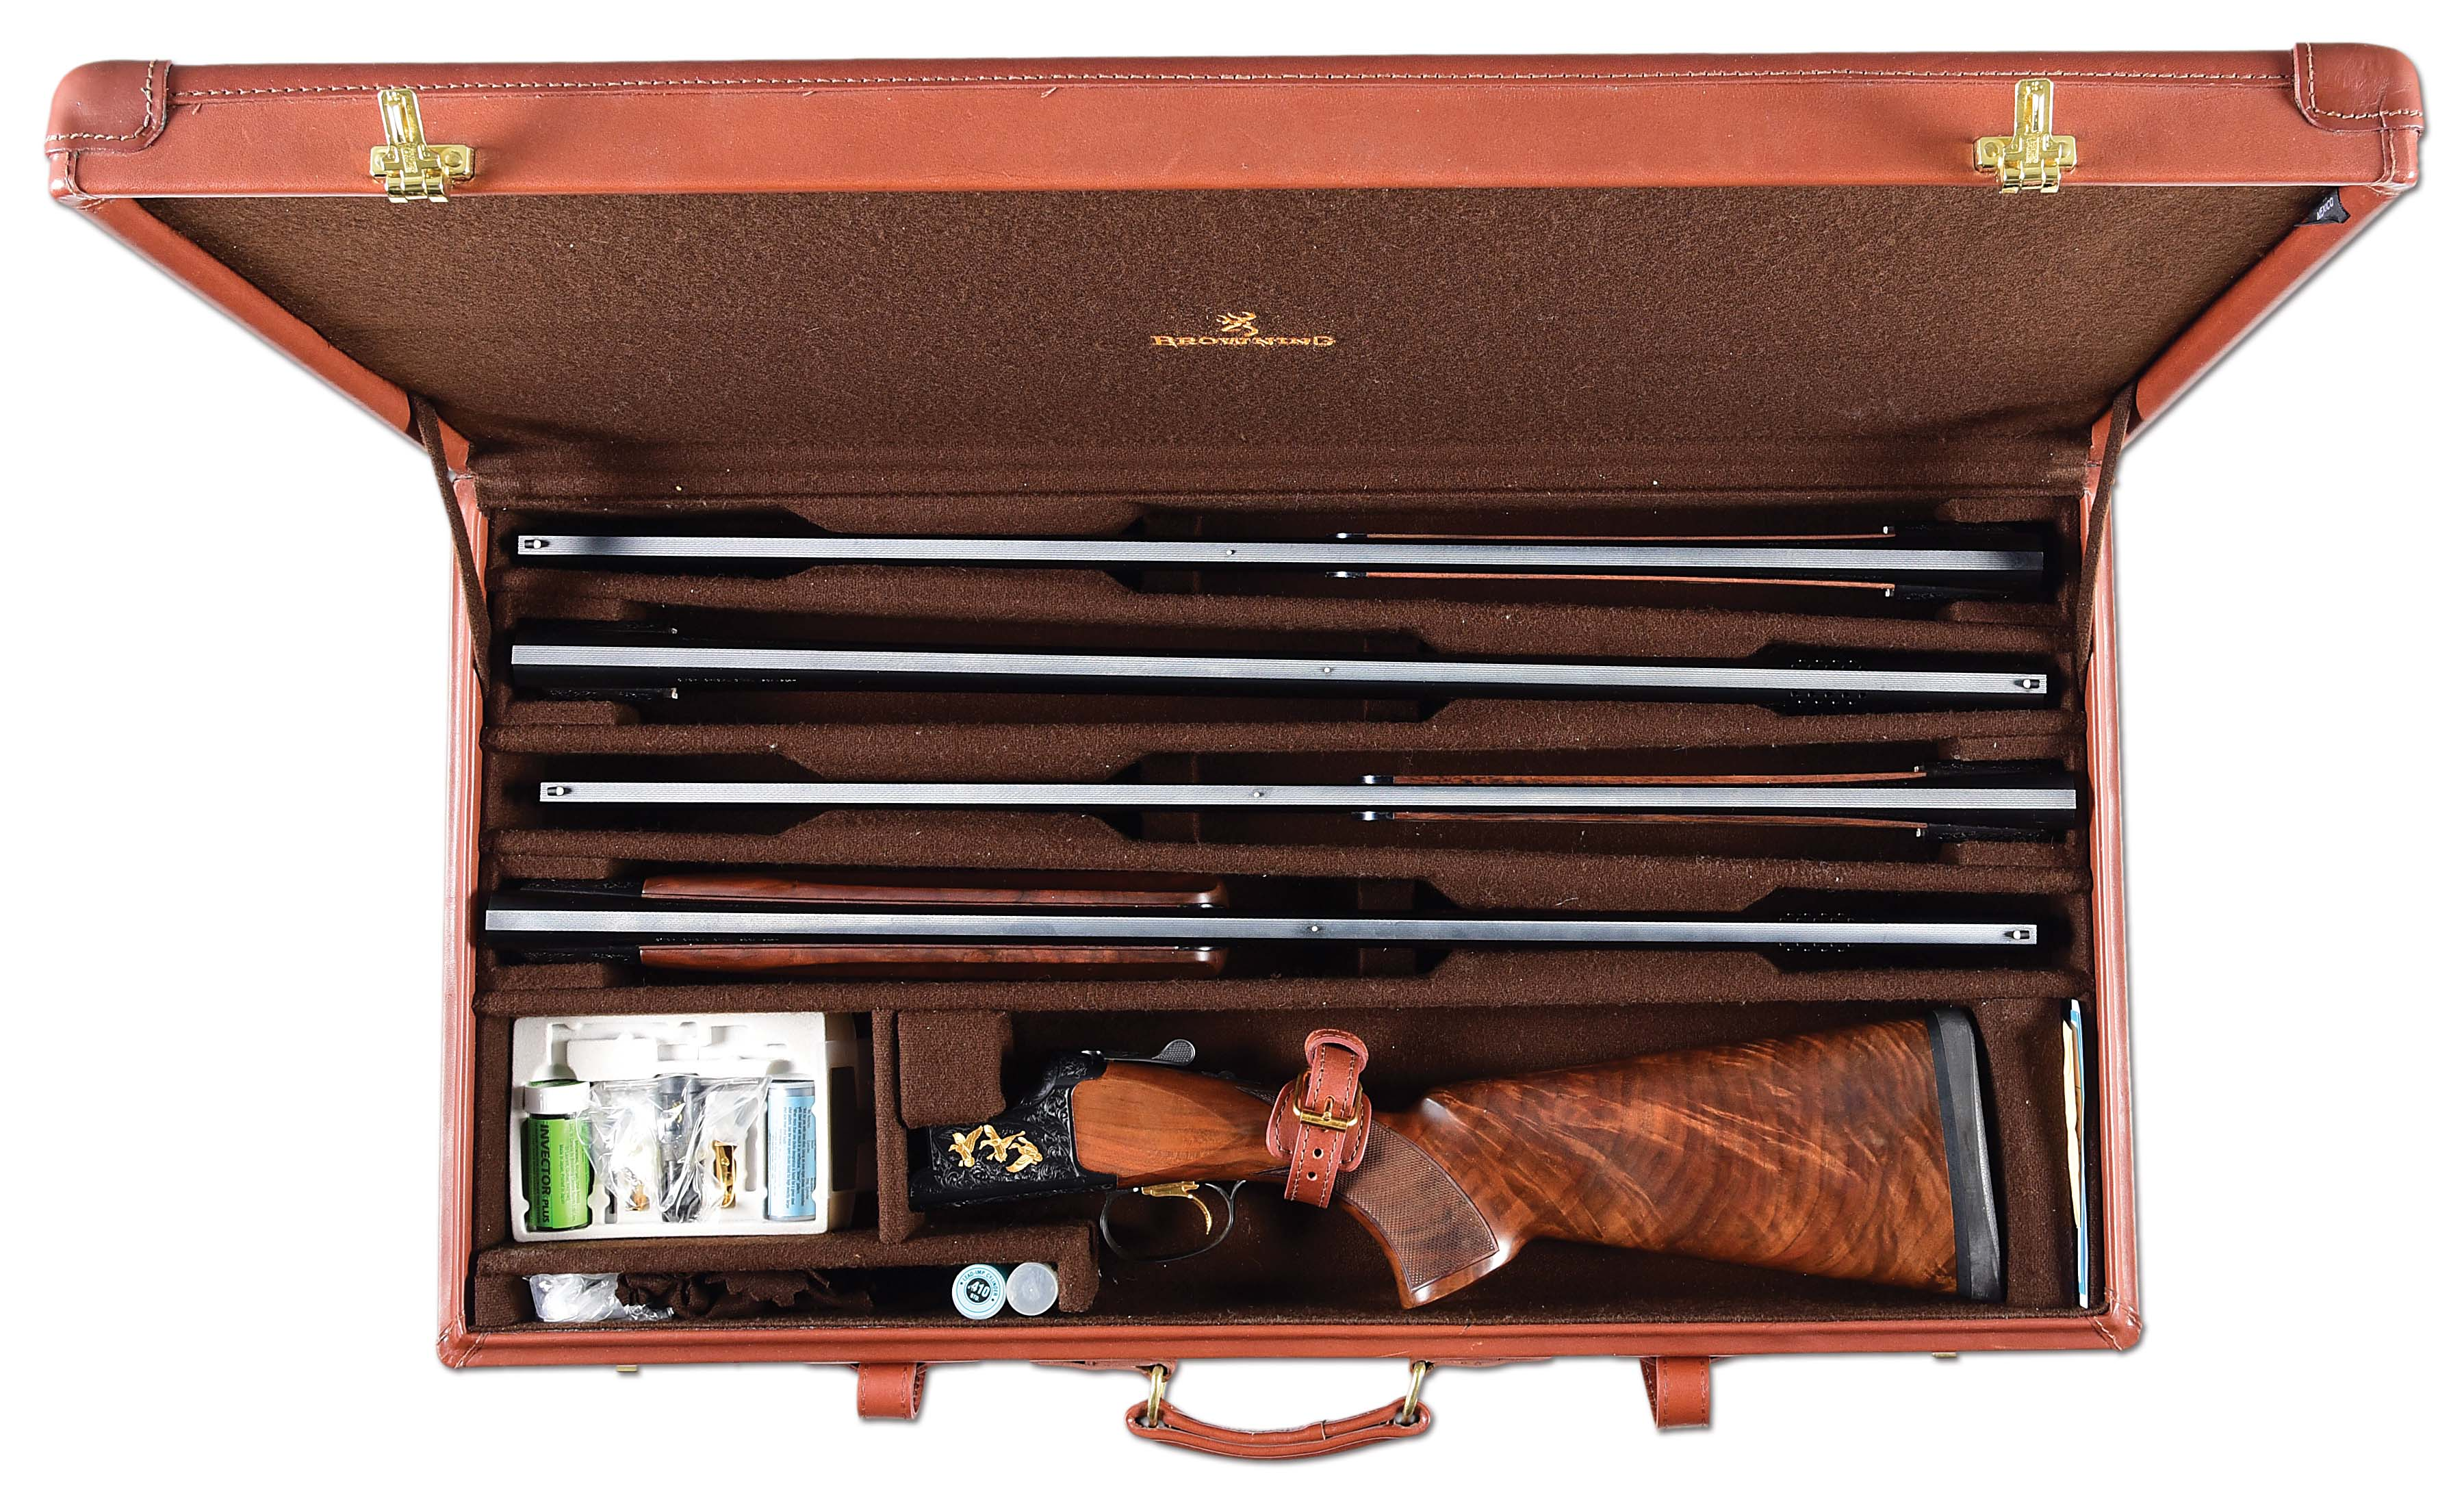 Morphy's to unleash 2,100 high-powered lots at Aug. 11-13 Firearms Auction